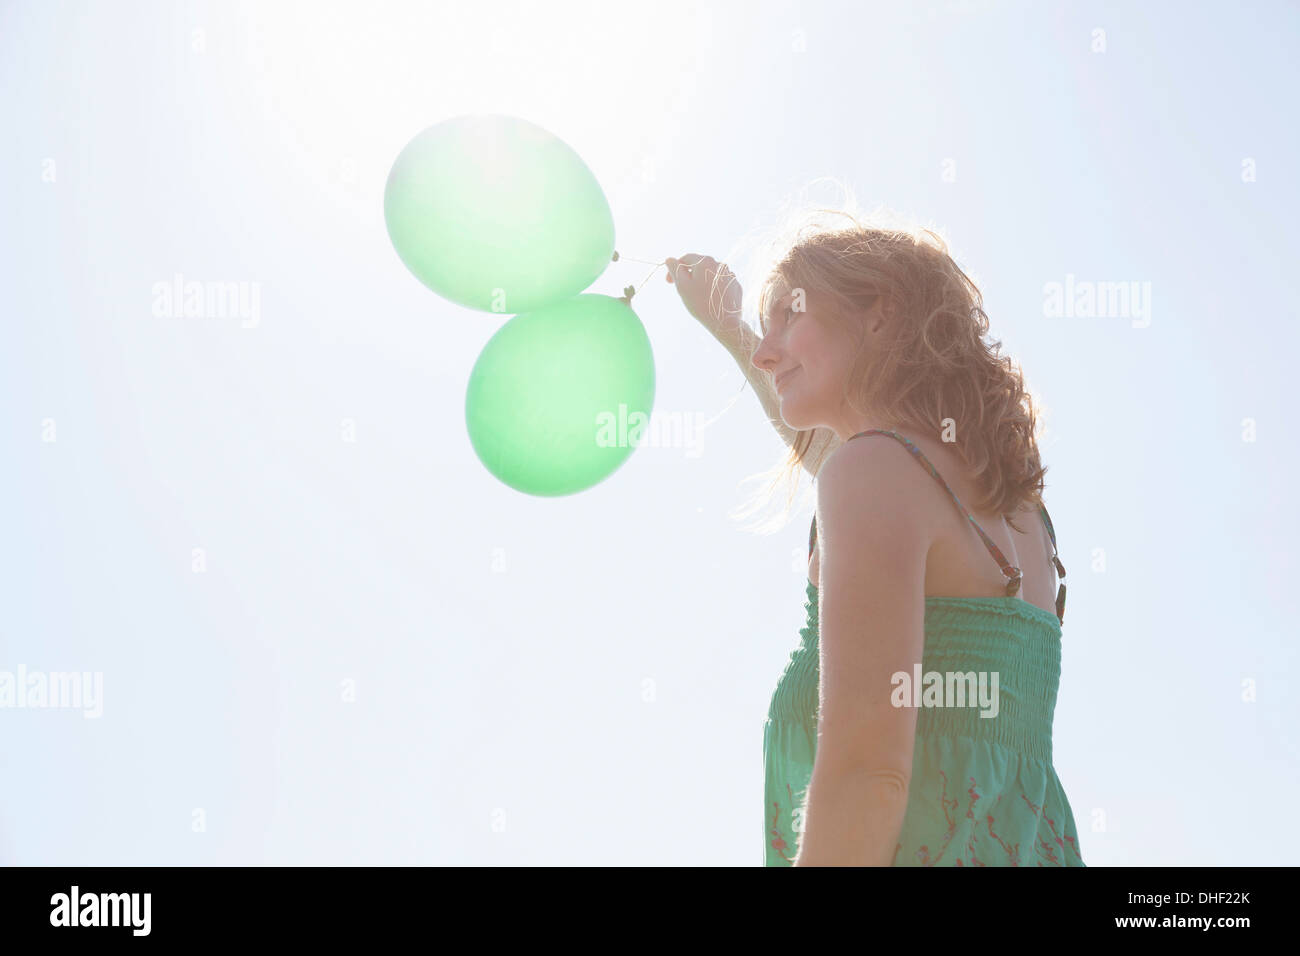 Woman holding two green balloons, Wales, UK - Stock Image